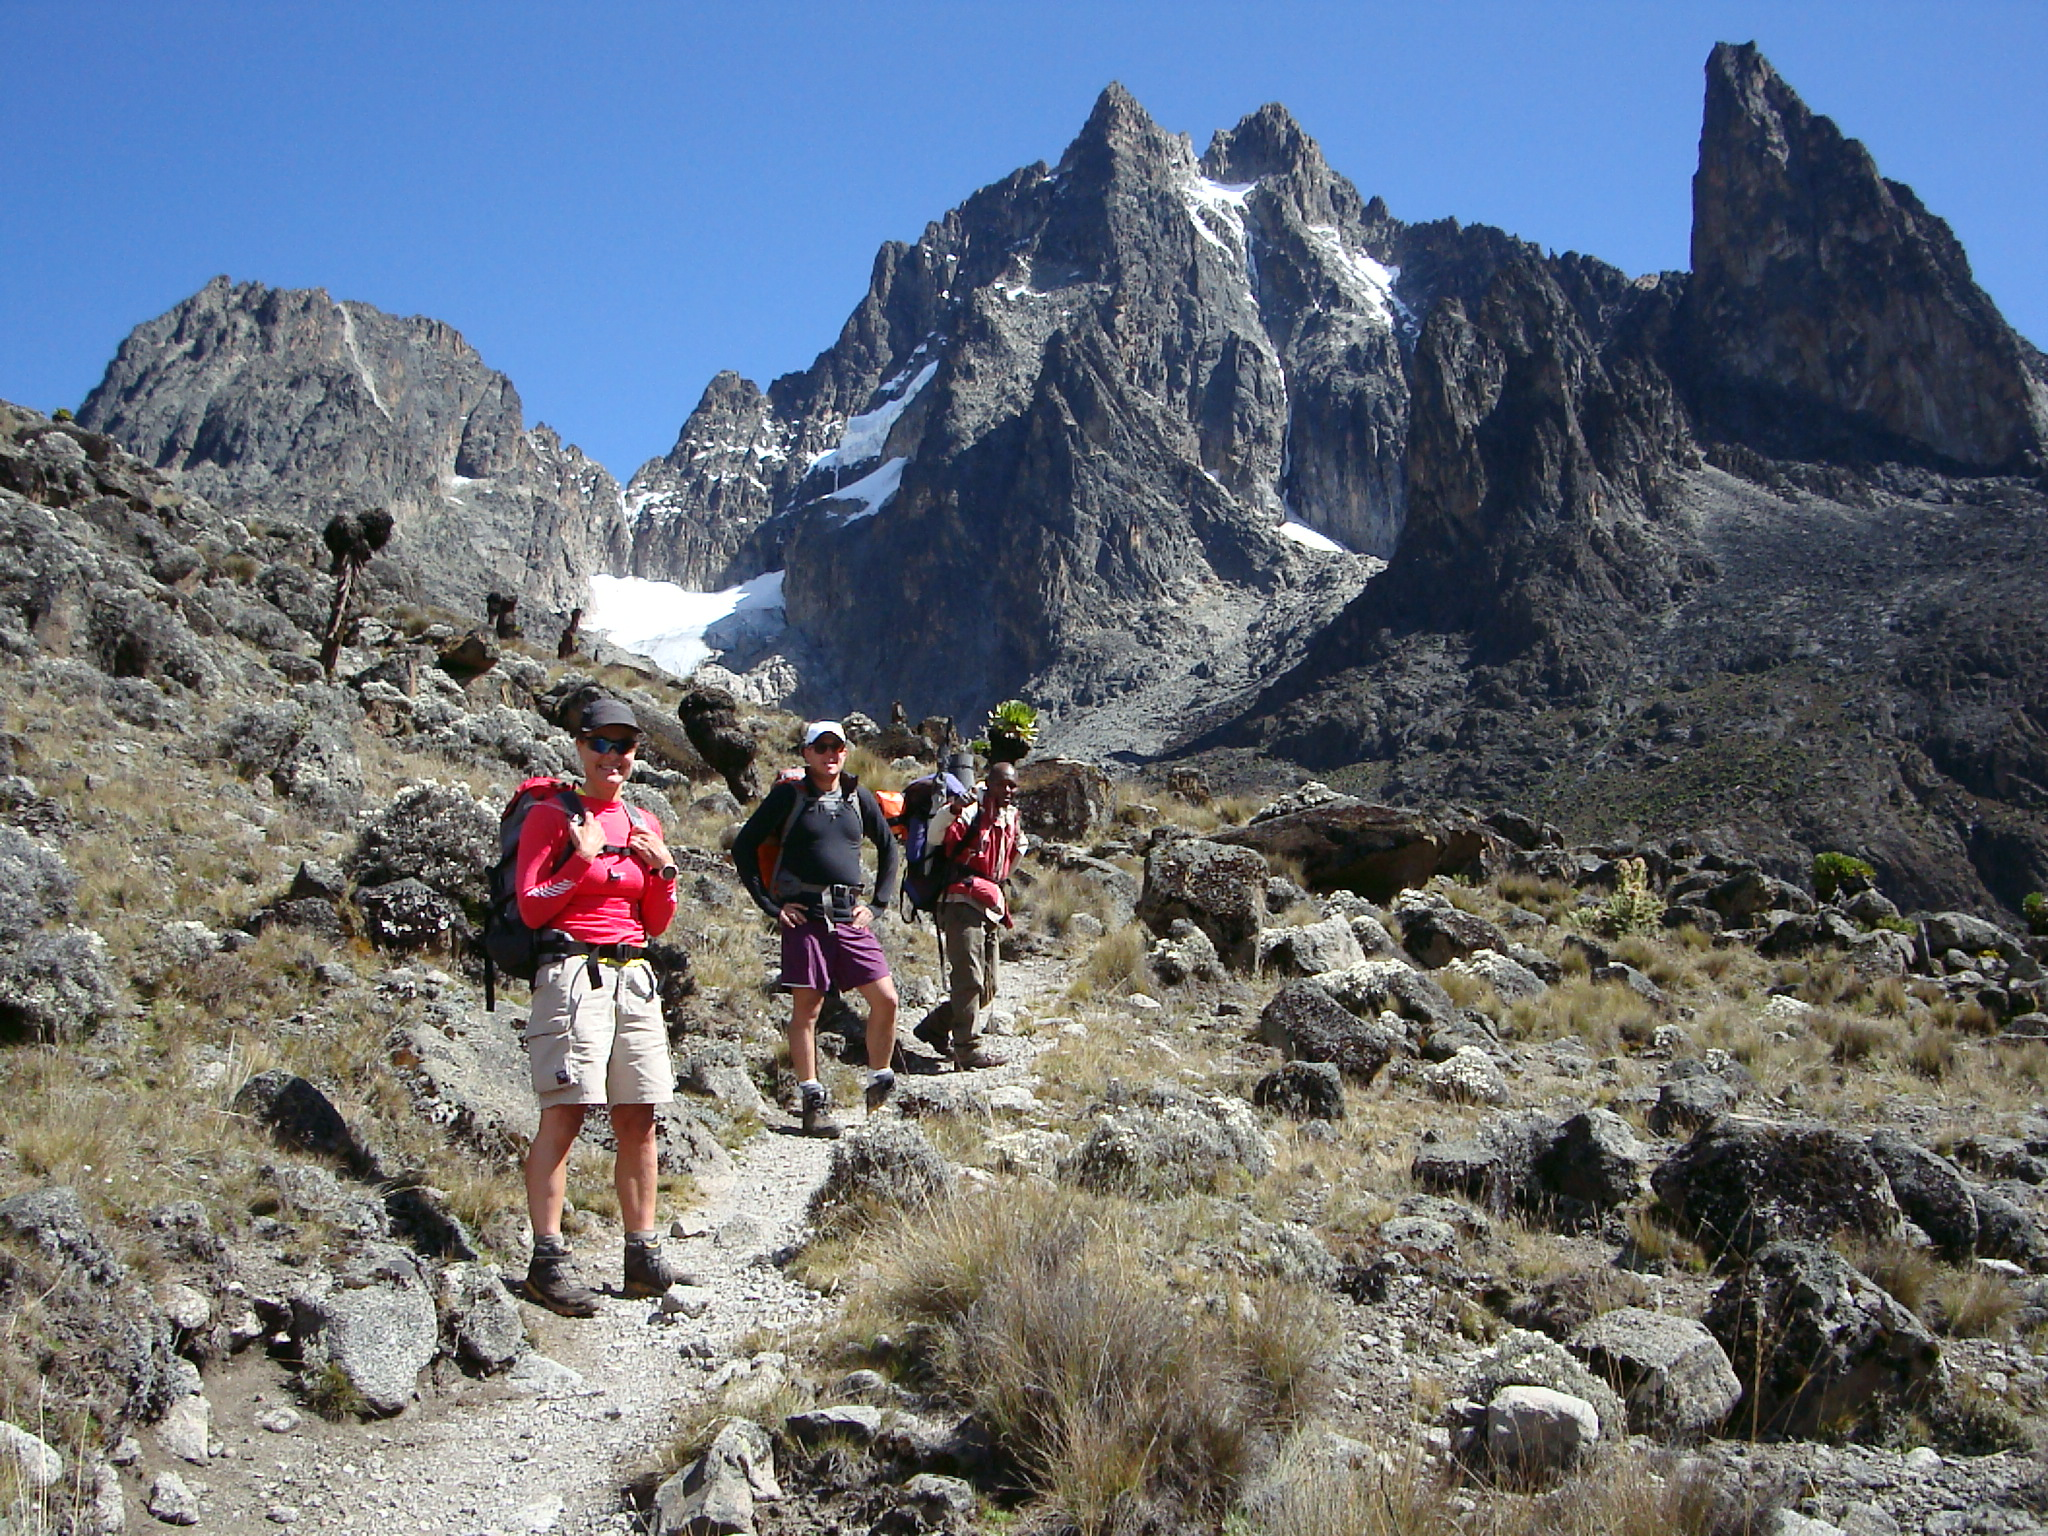 mt kenya Mount kenya national park was created in 1949 to protect mount kenya and its environment from destruction and development the mount kenya forest reserve encircles the national park and the two areas, combined, are a unesco world heritage site.